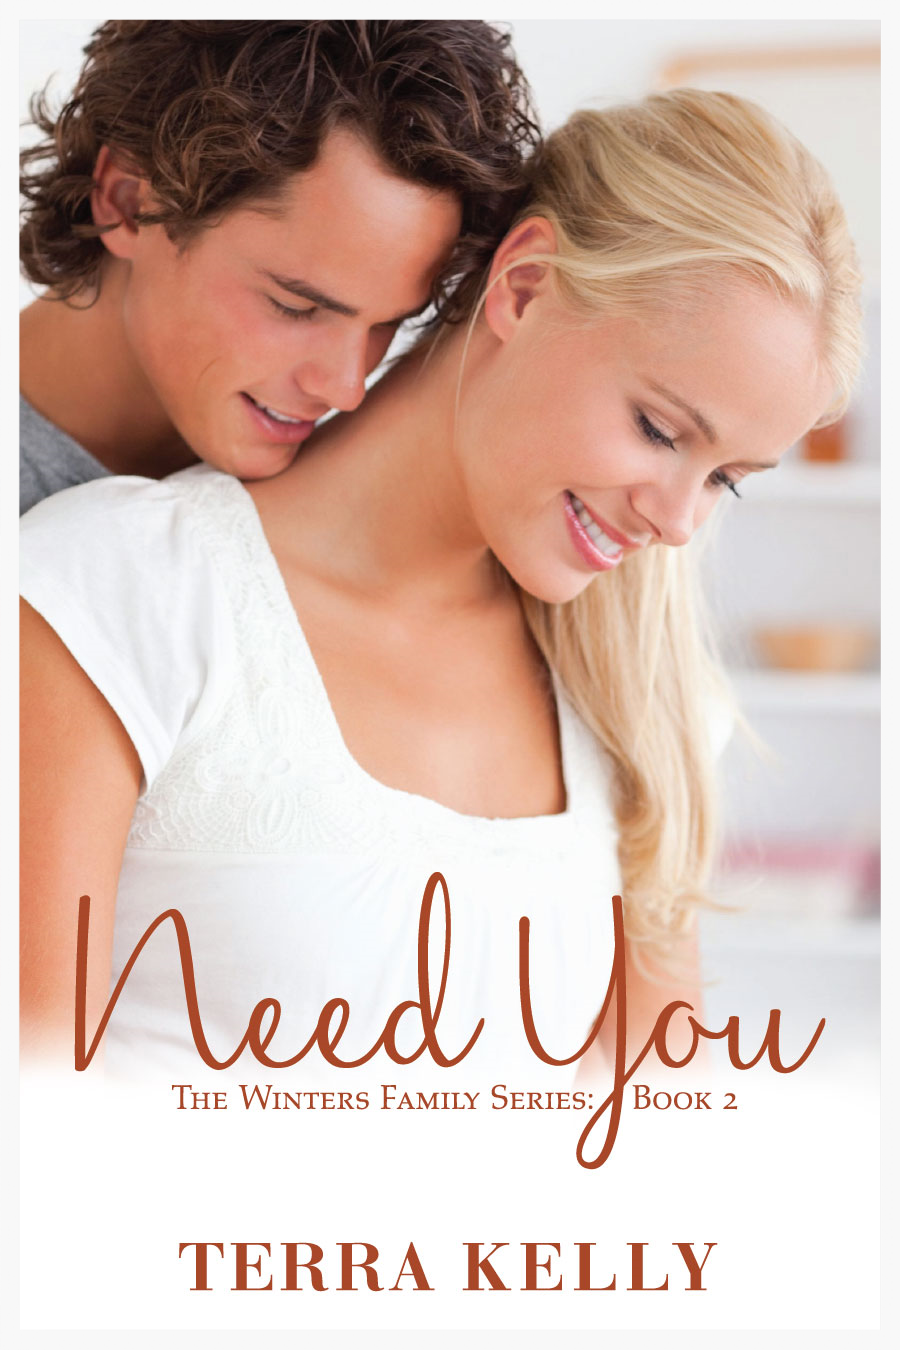 Author Terra Kelly's Second Book Need You